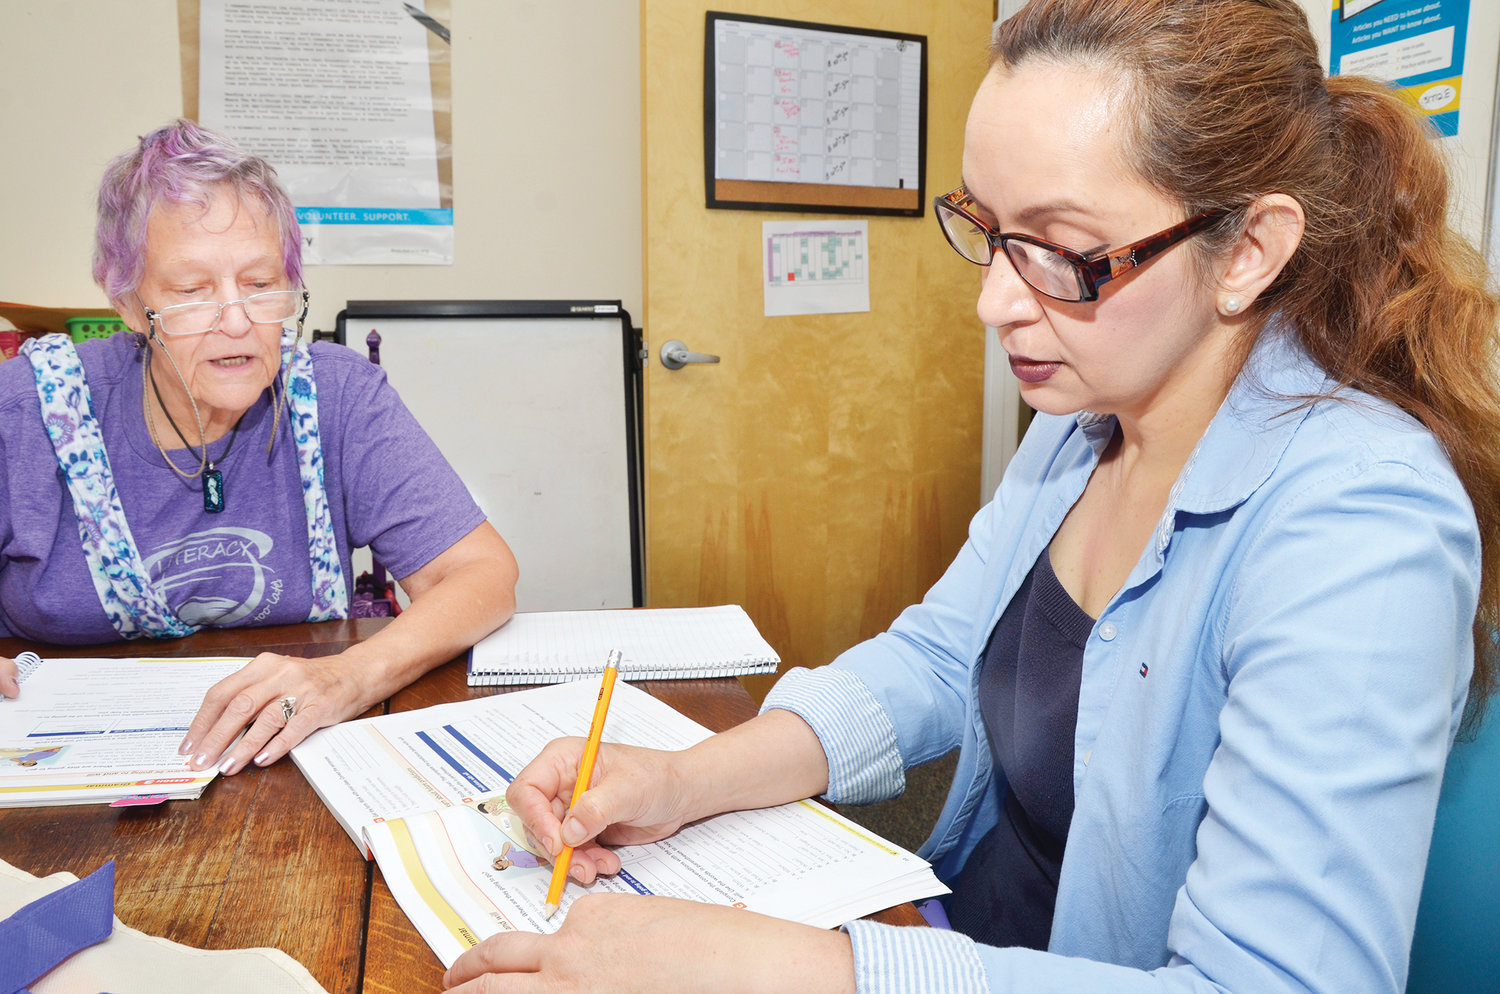 B Demers, left, gives Aidee Orozco a lesson in the English language at the offices of the Chatham Literacy Council. Demers speaks English and Spanish, and helps her students with the difficulties acquiring the unfamiliar words.